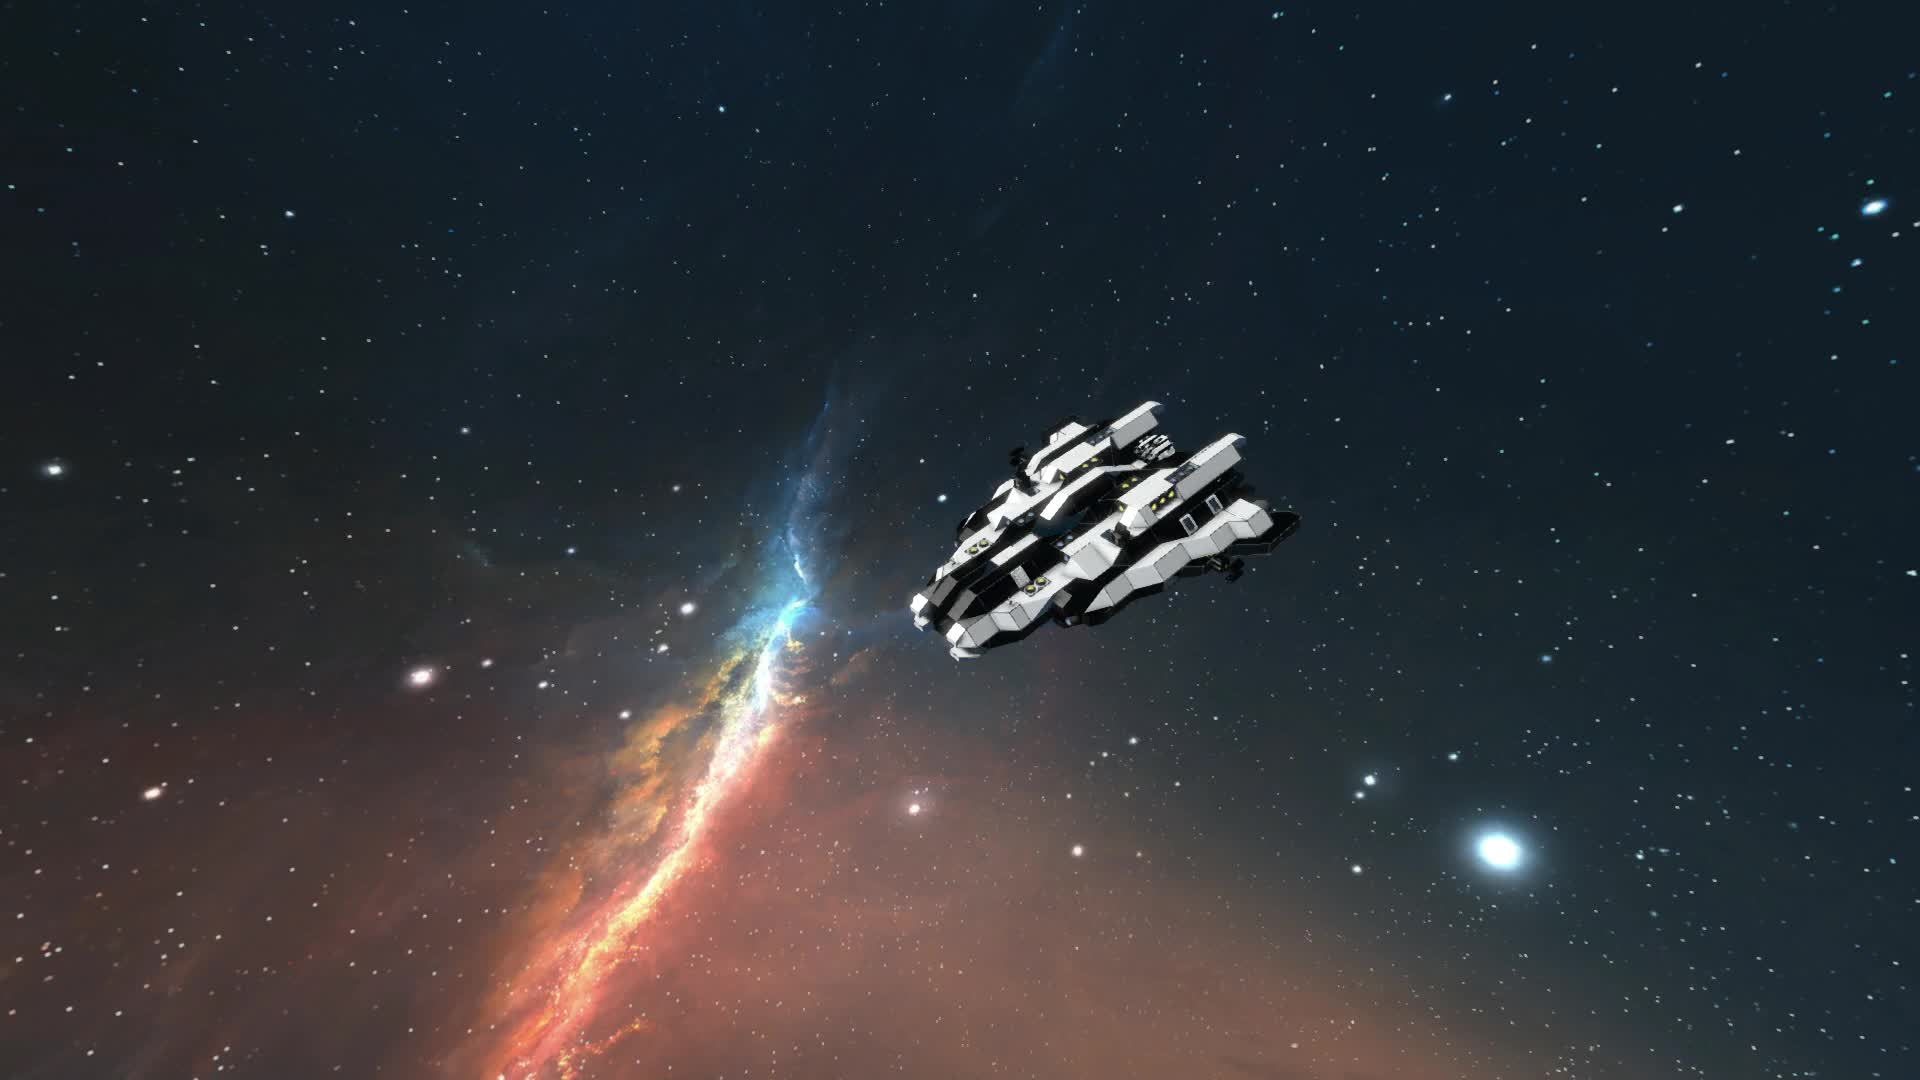 spaceengineers, Party Mix missile volley GIFs